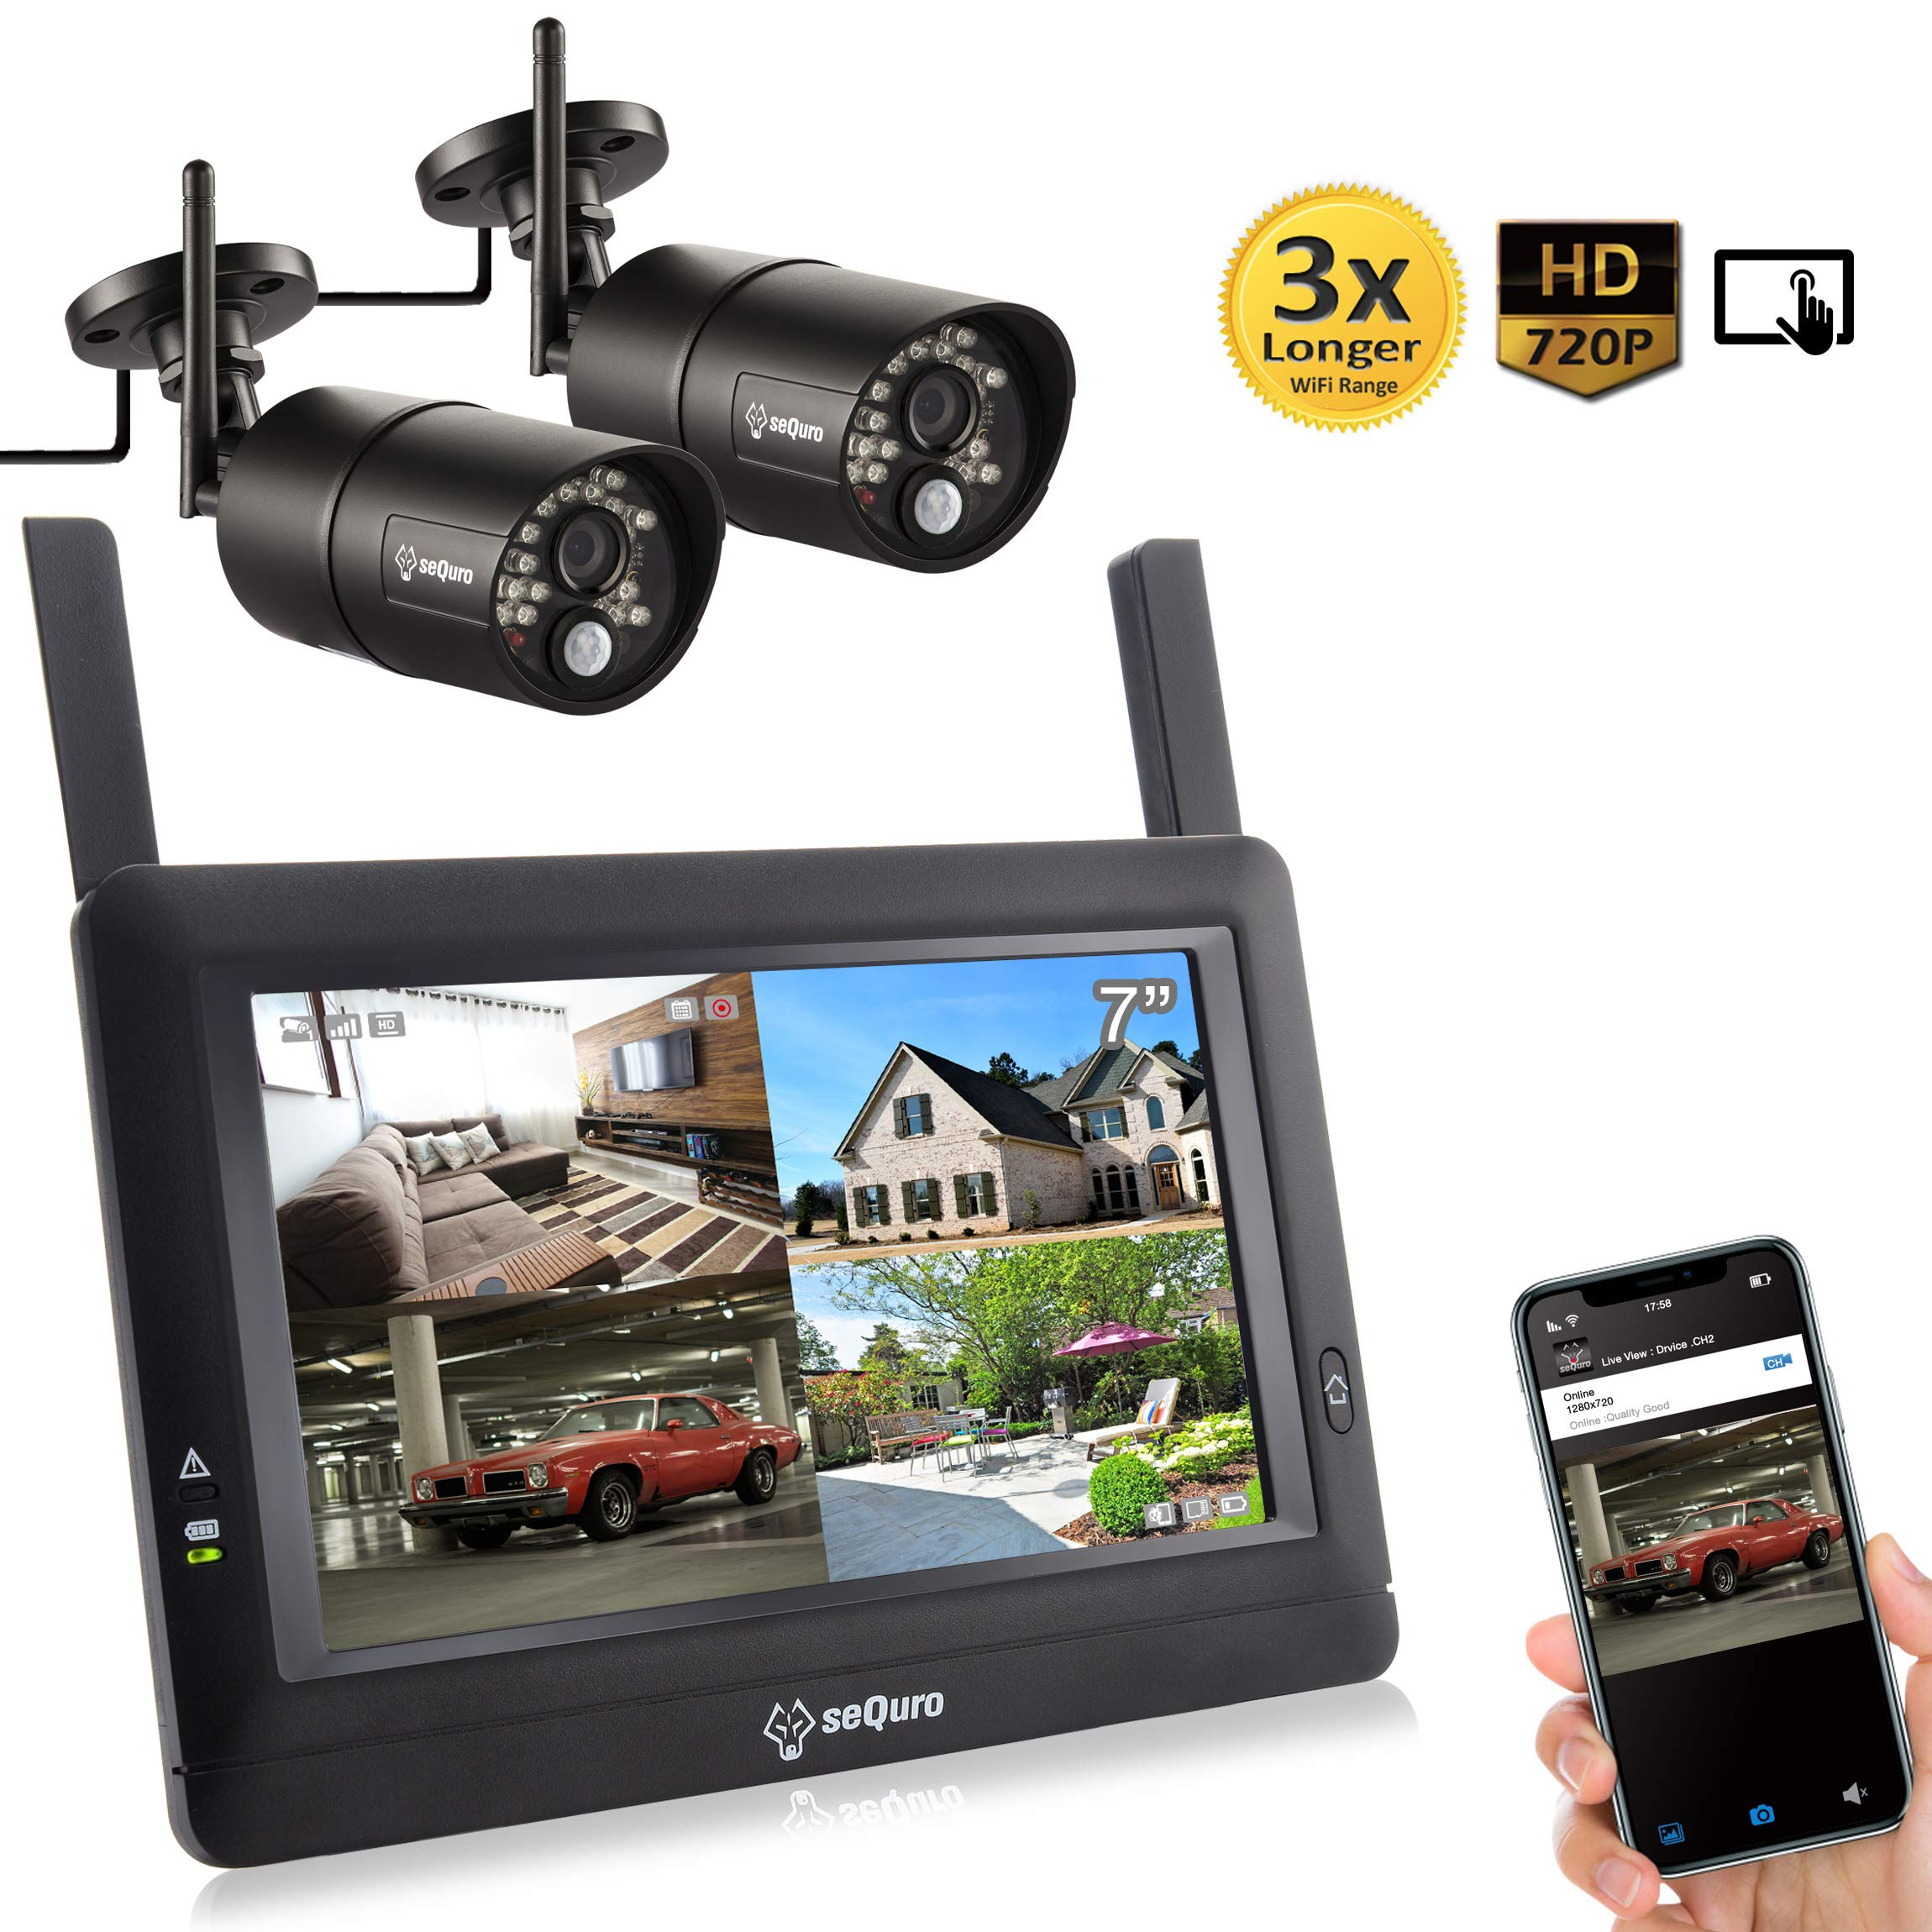 Sequro GuardPro DIY Long Range Wireless Video Surveillance System 7'' Touchscreen Monitor 2 Outdoor/Indoor Night Vision IP66 Weatherproof HD Network DVR Home Security IP Cameras Smartphone Access by Sequro